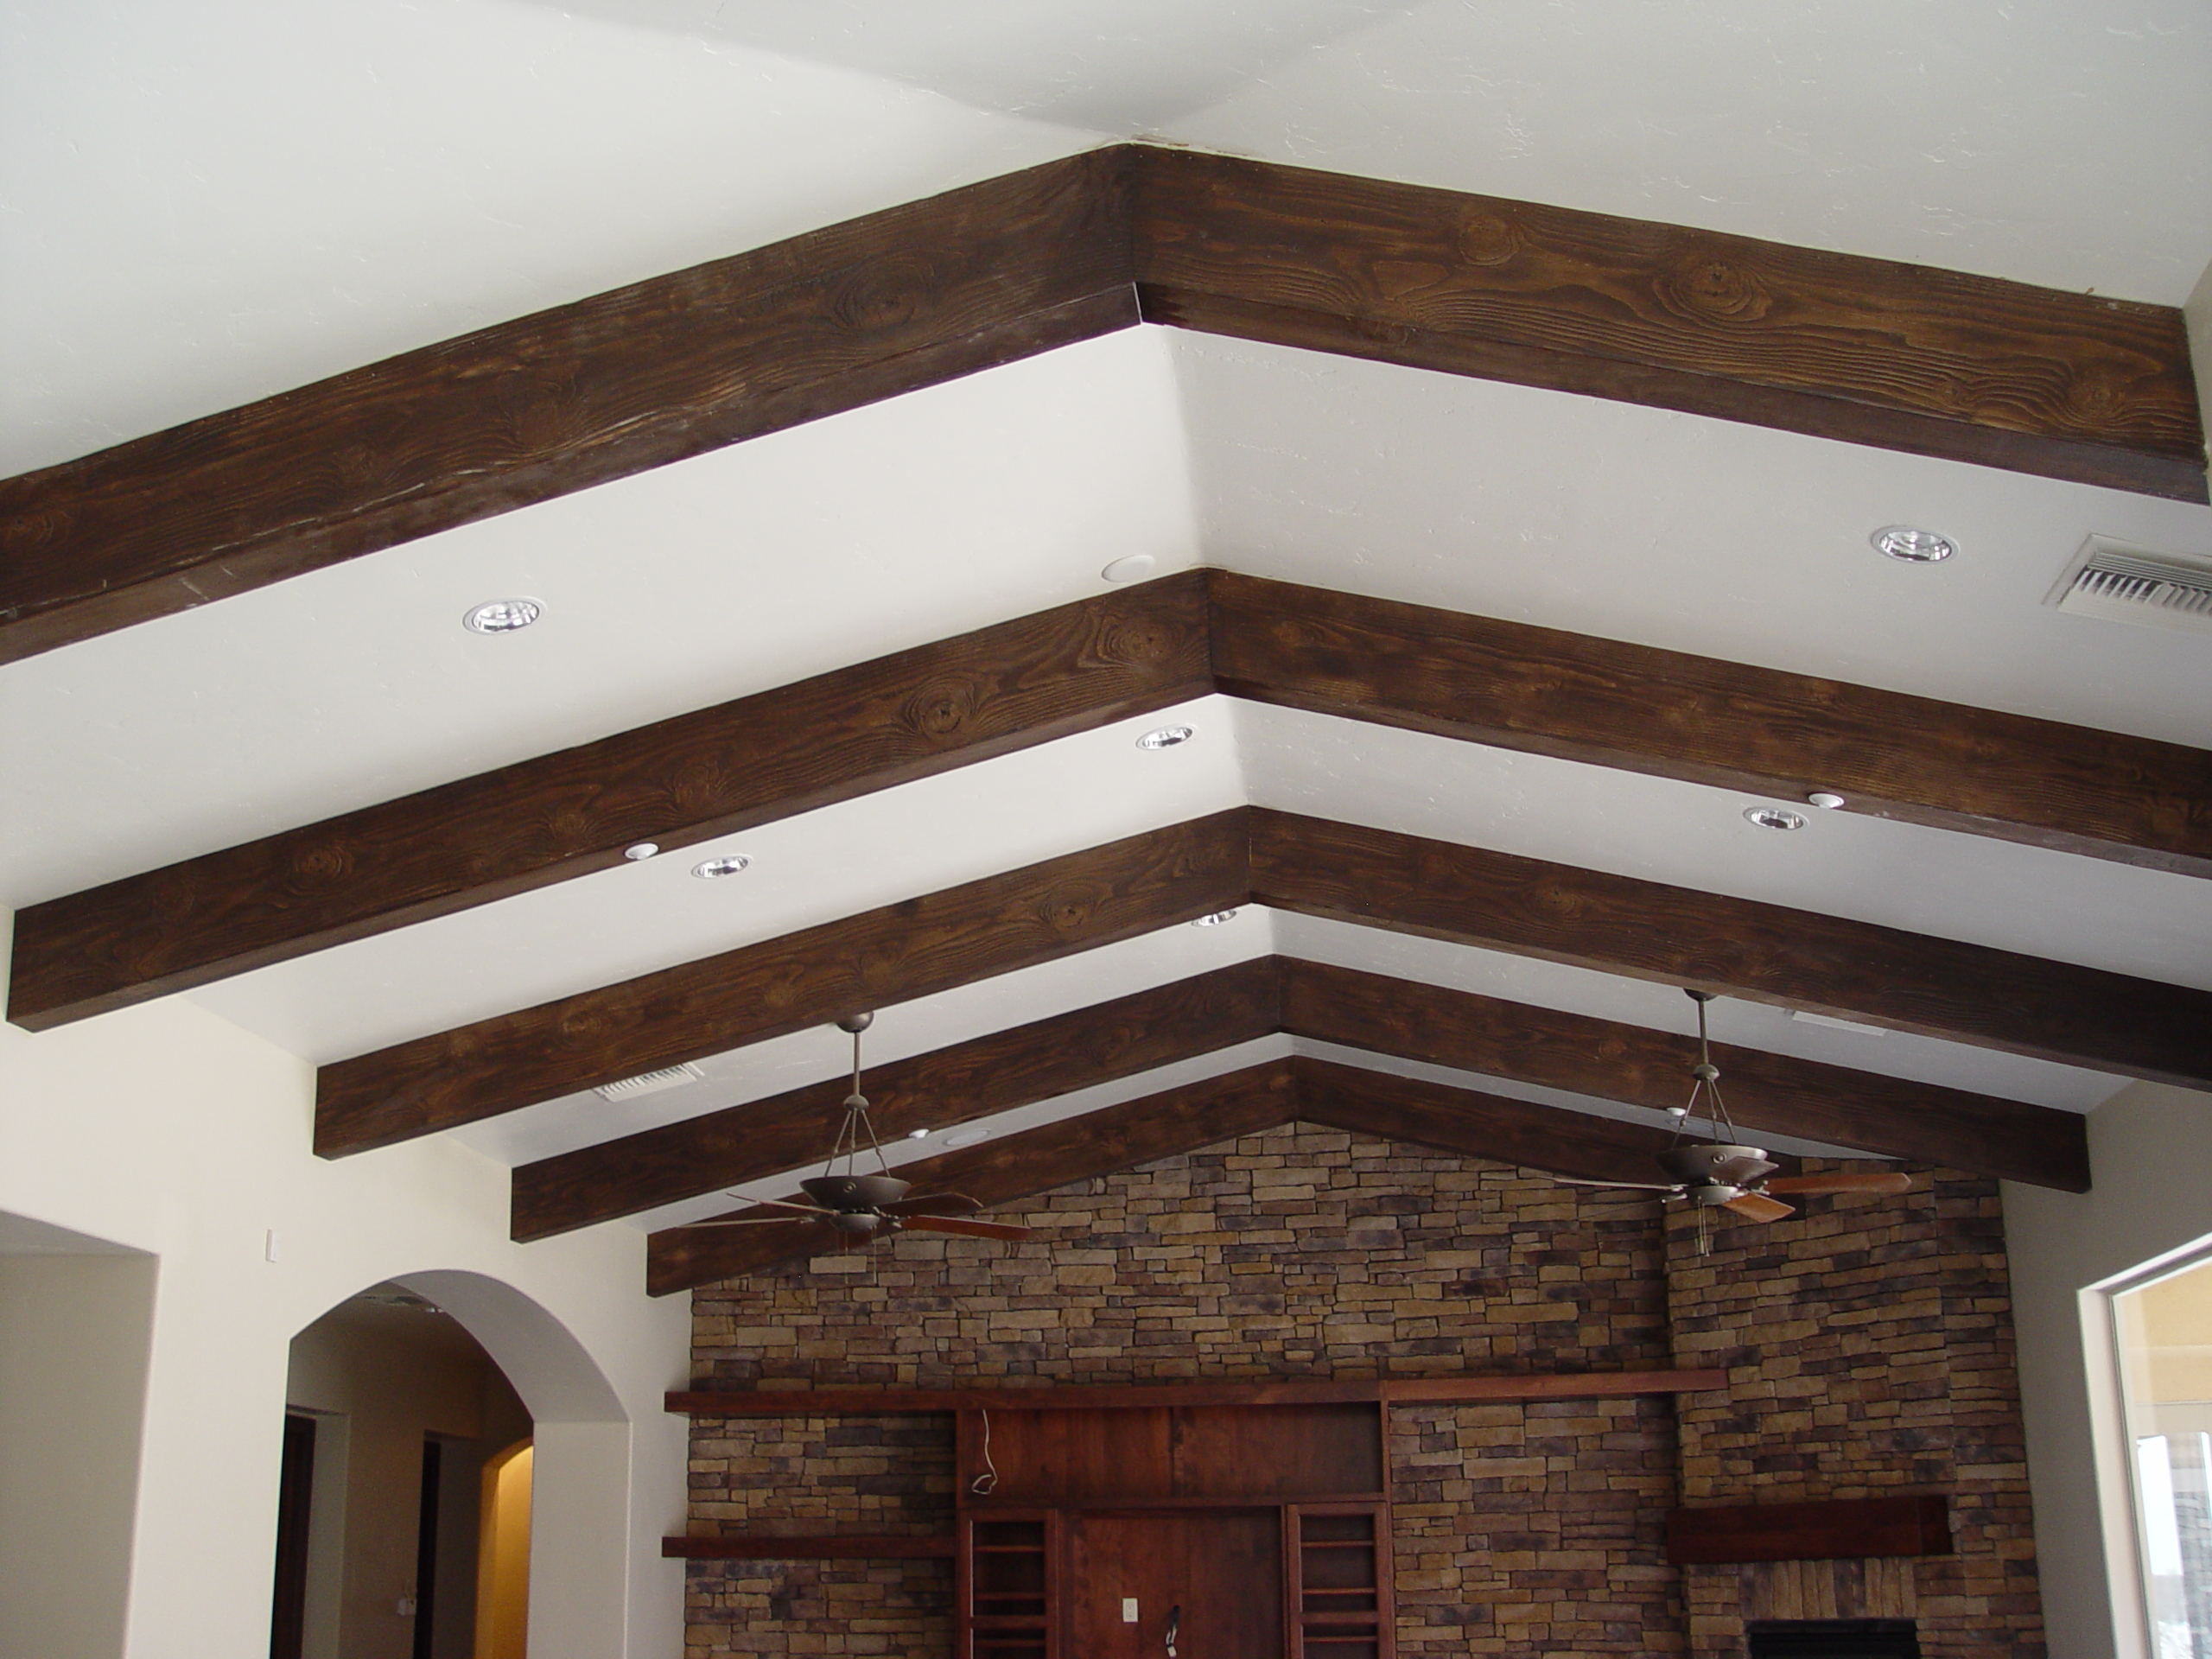 Wood Beam Ceiling Ideas ~ Exposed ceiling beams ideas homesfeed